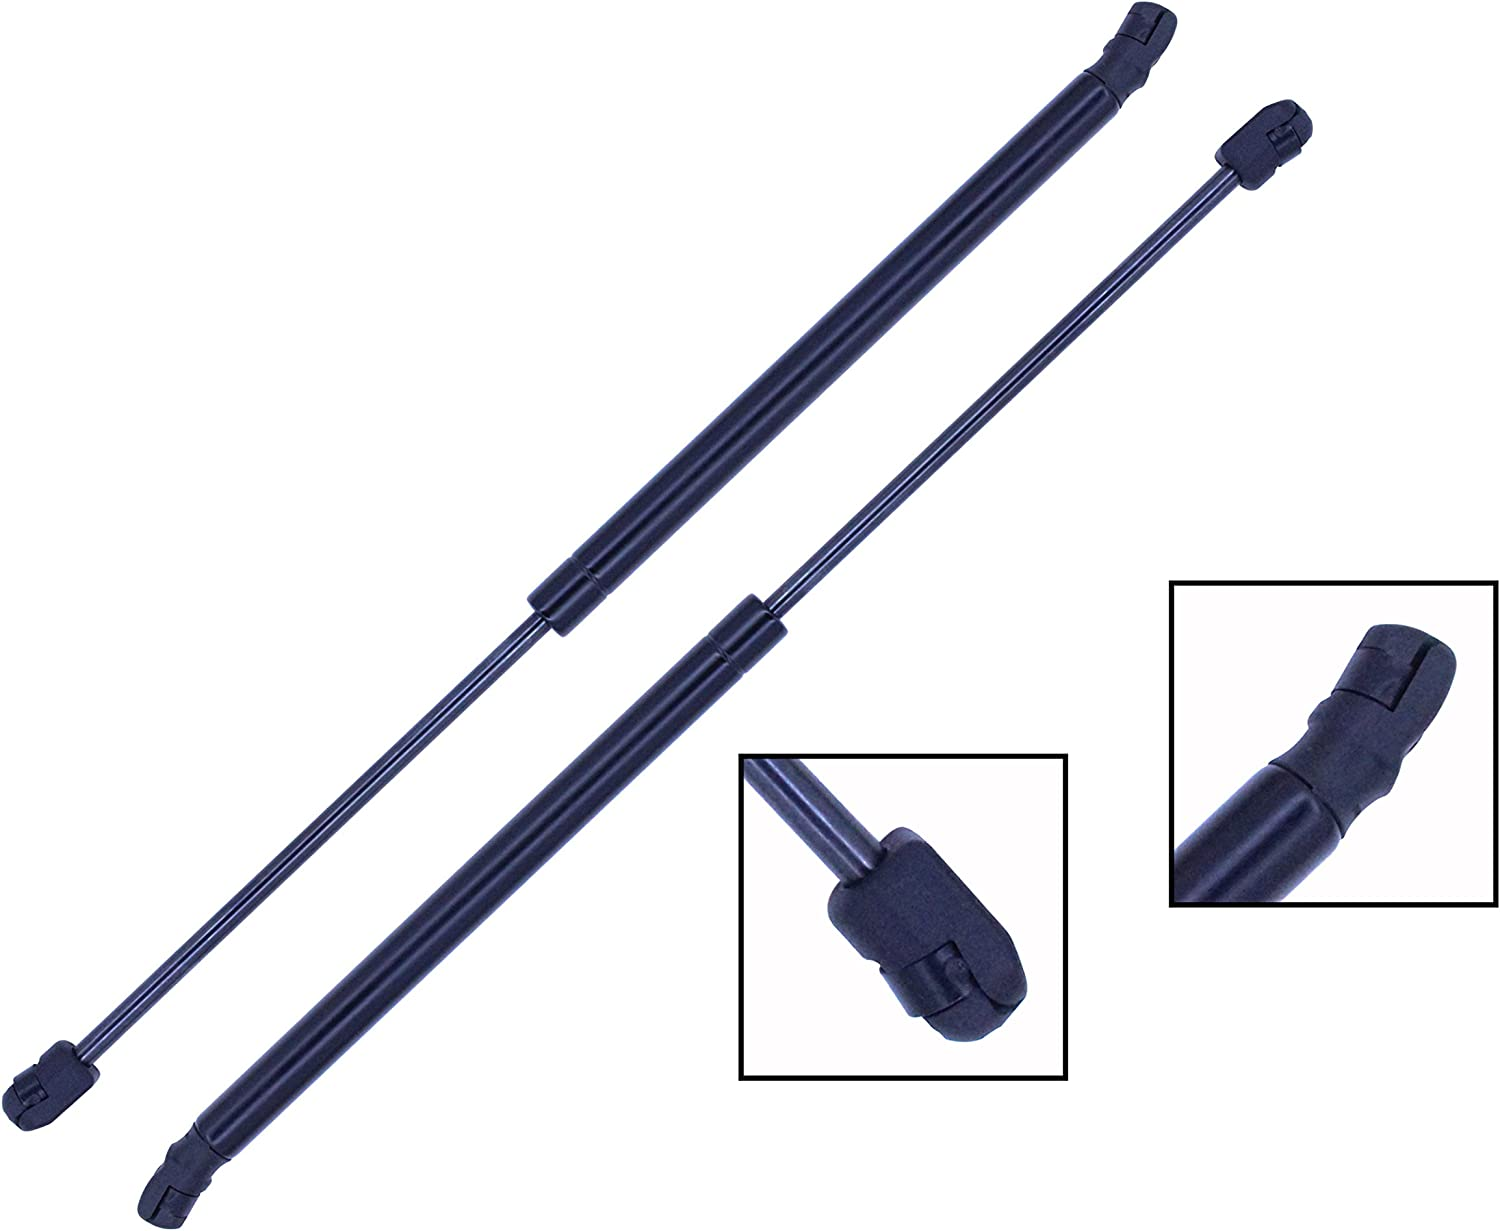 SET Liftgate Lift Supports 2008 To 2011 Dodge Grand Caravan // 2008 To 2011 Chrysler Town /& Country Fits Powered Liftgate Models 2 Pieces